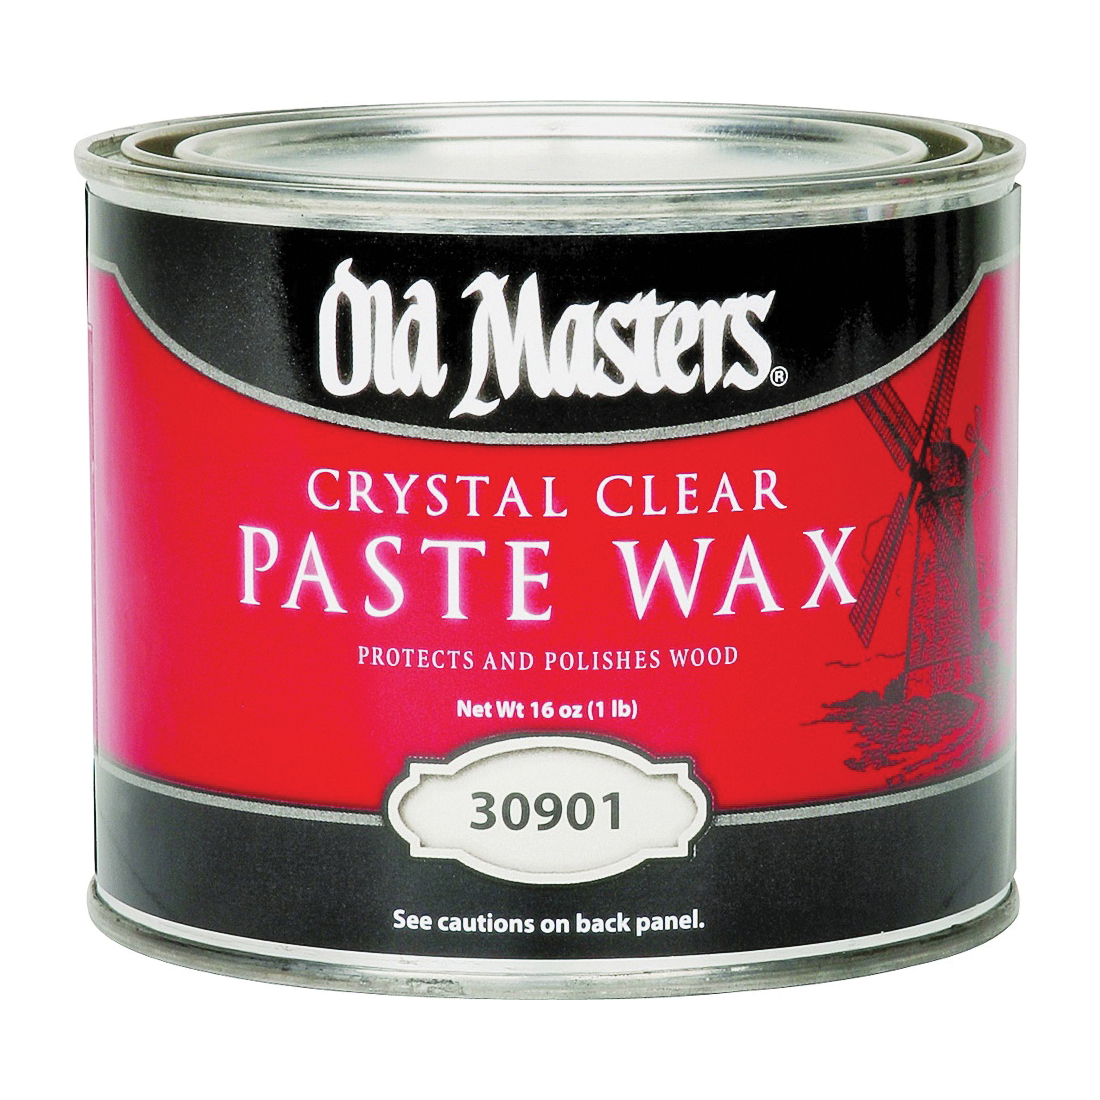 Picture of Old Masters 30901 Paste Wax, Crystal Clear, White, Solid, 1 lb, Can